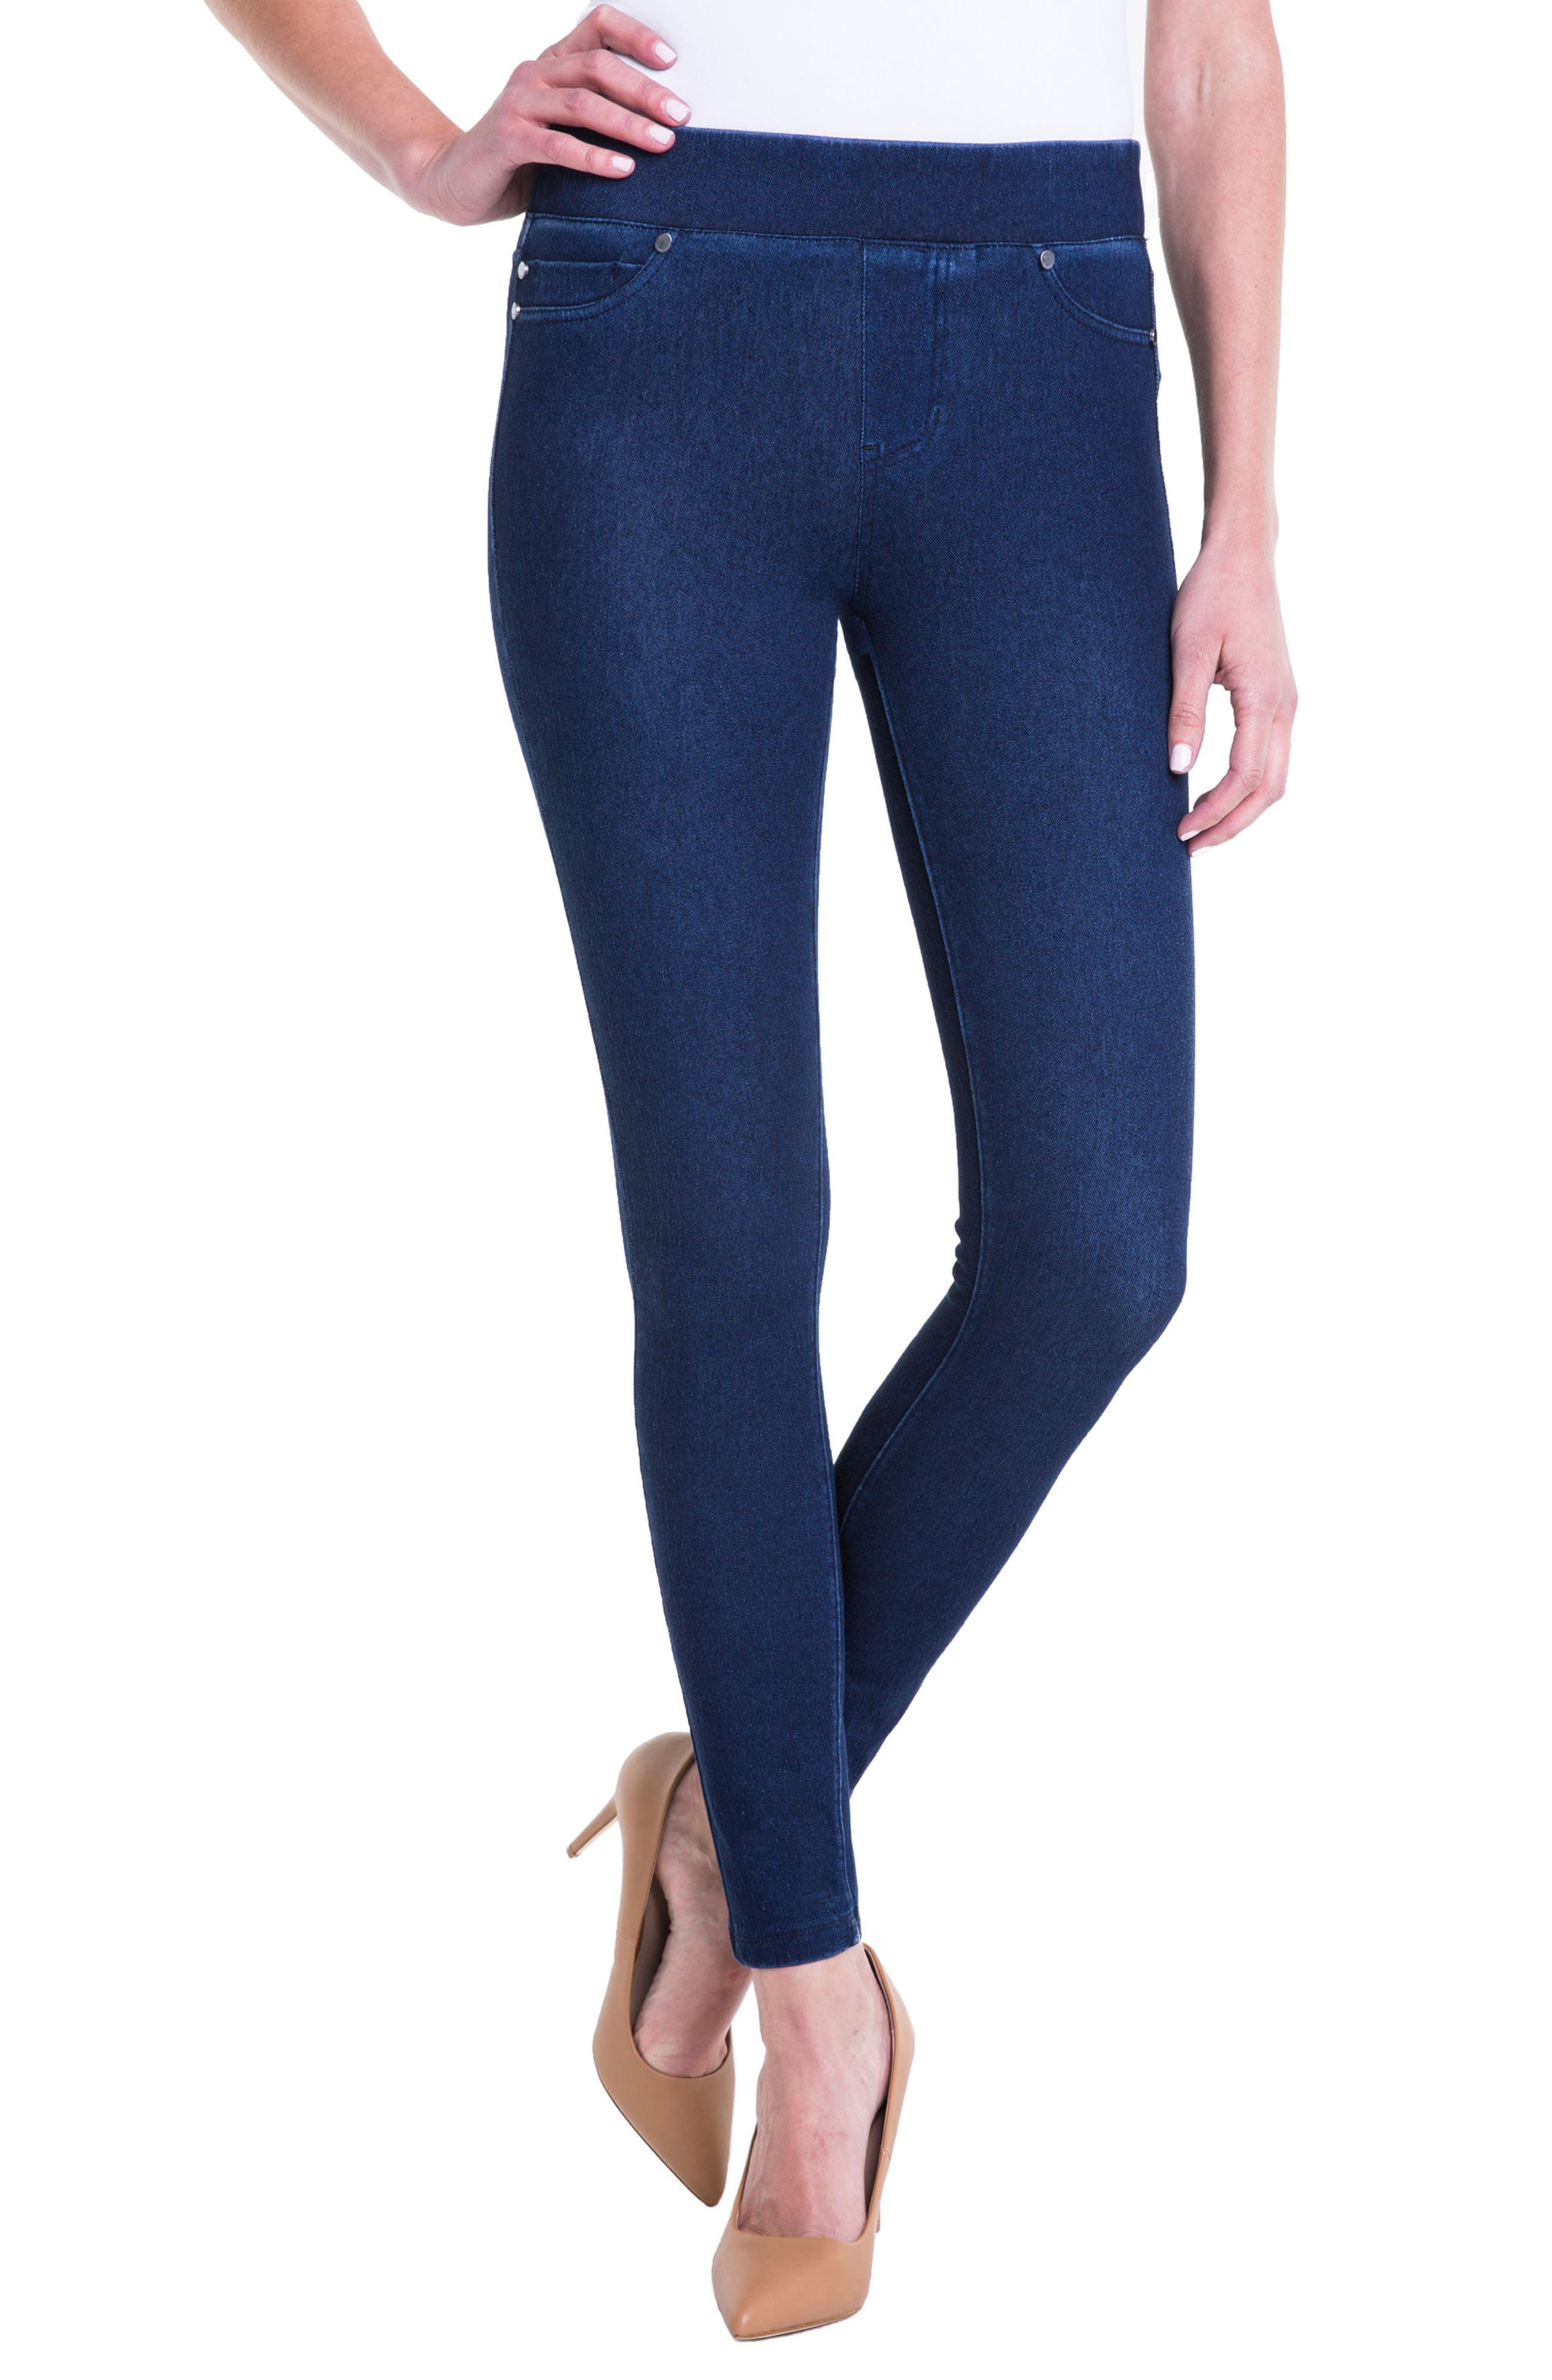 Sienna Pull-On Ankle Legging Jeans,                         Main,                         color, 403